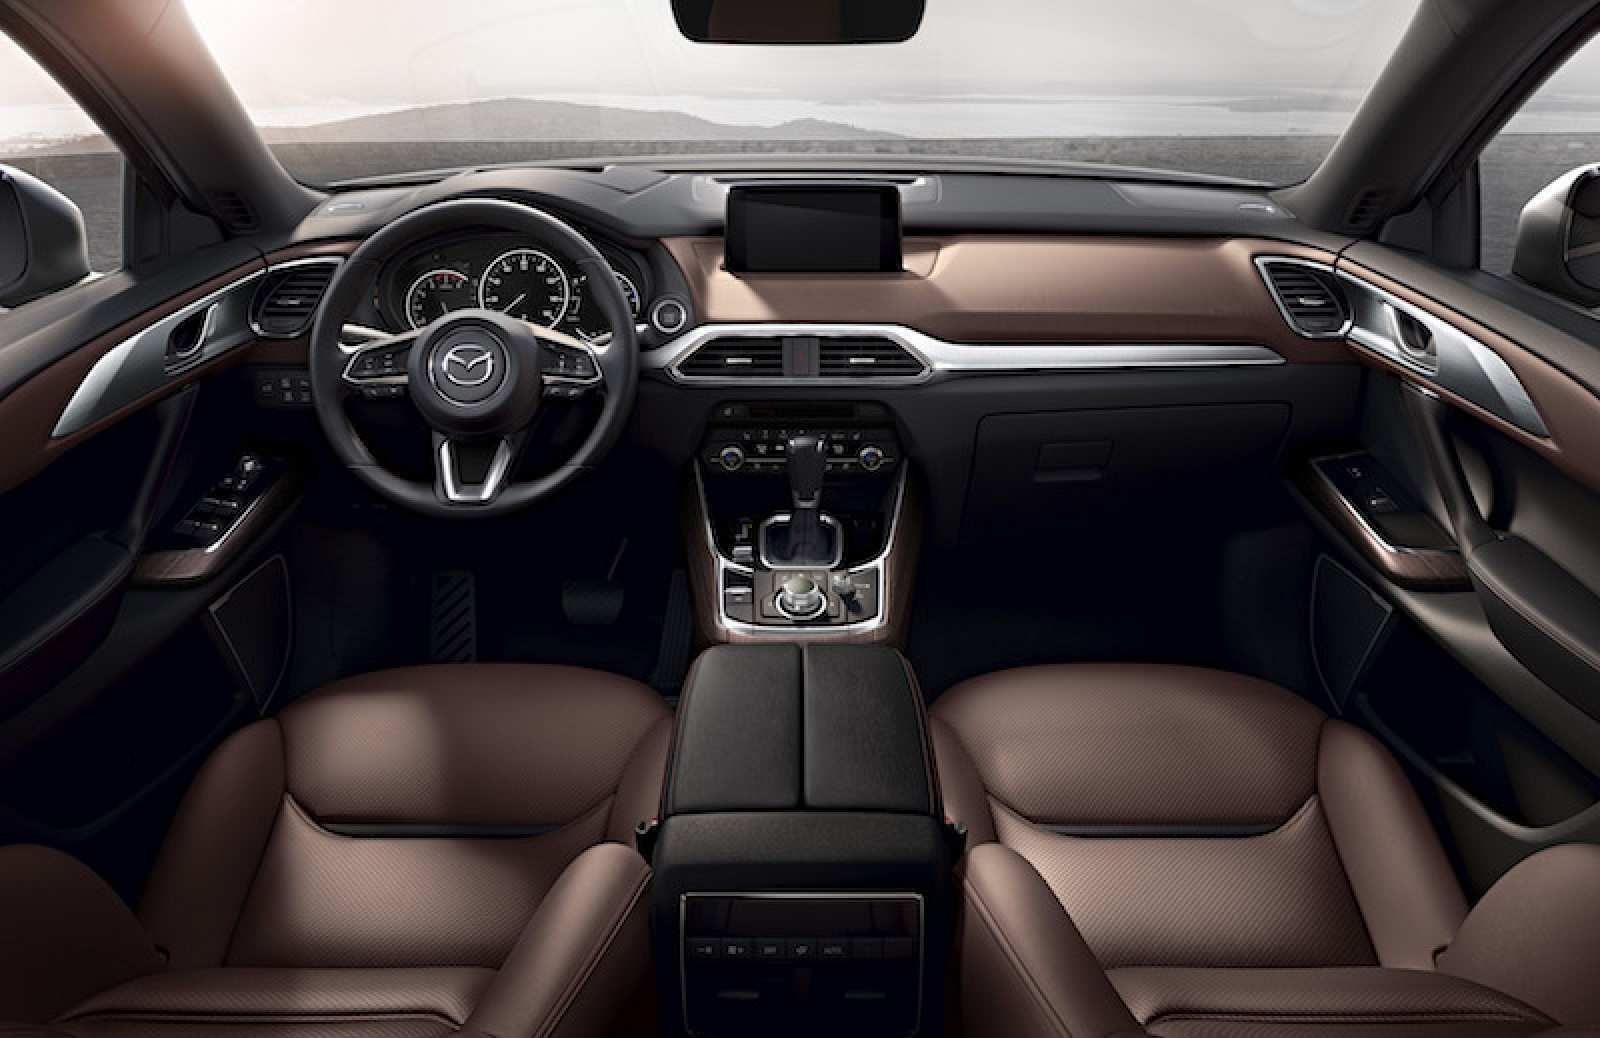 96 The Best 2019 Mazda Cx 9 Rumors Release Date And Concept